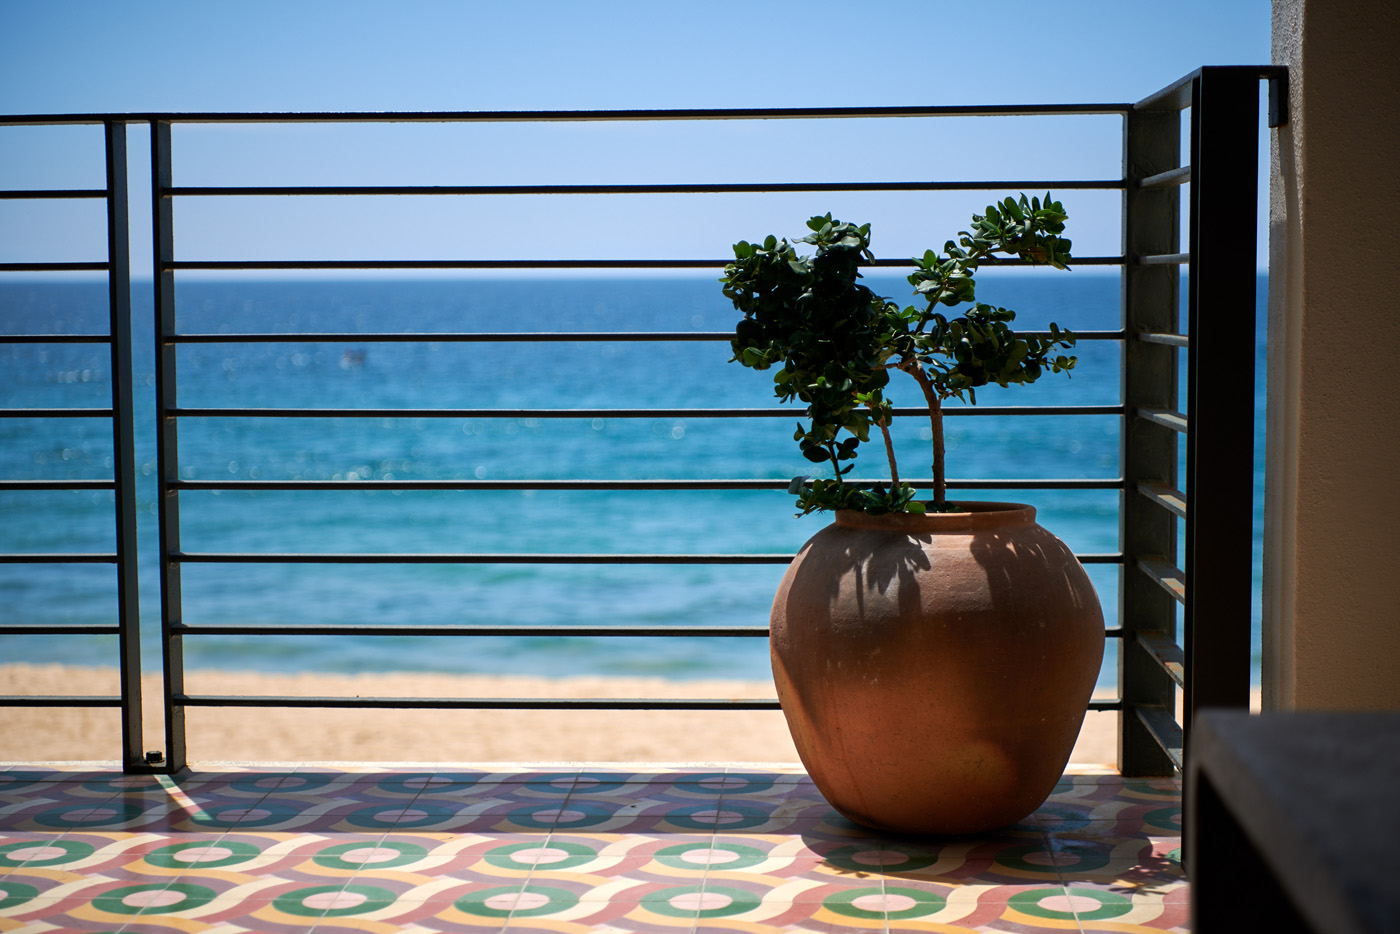 Potted plant with view of ocean